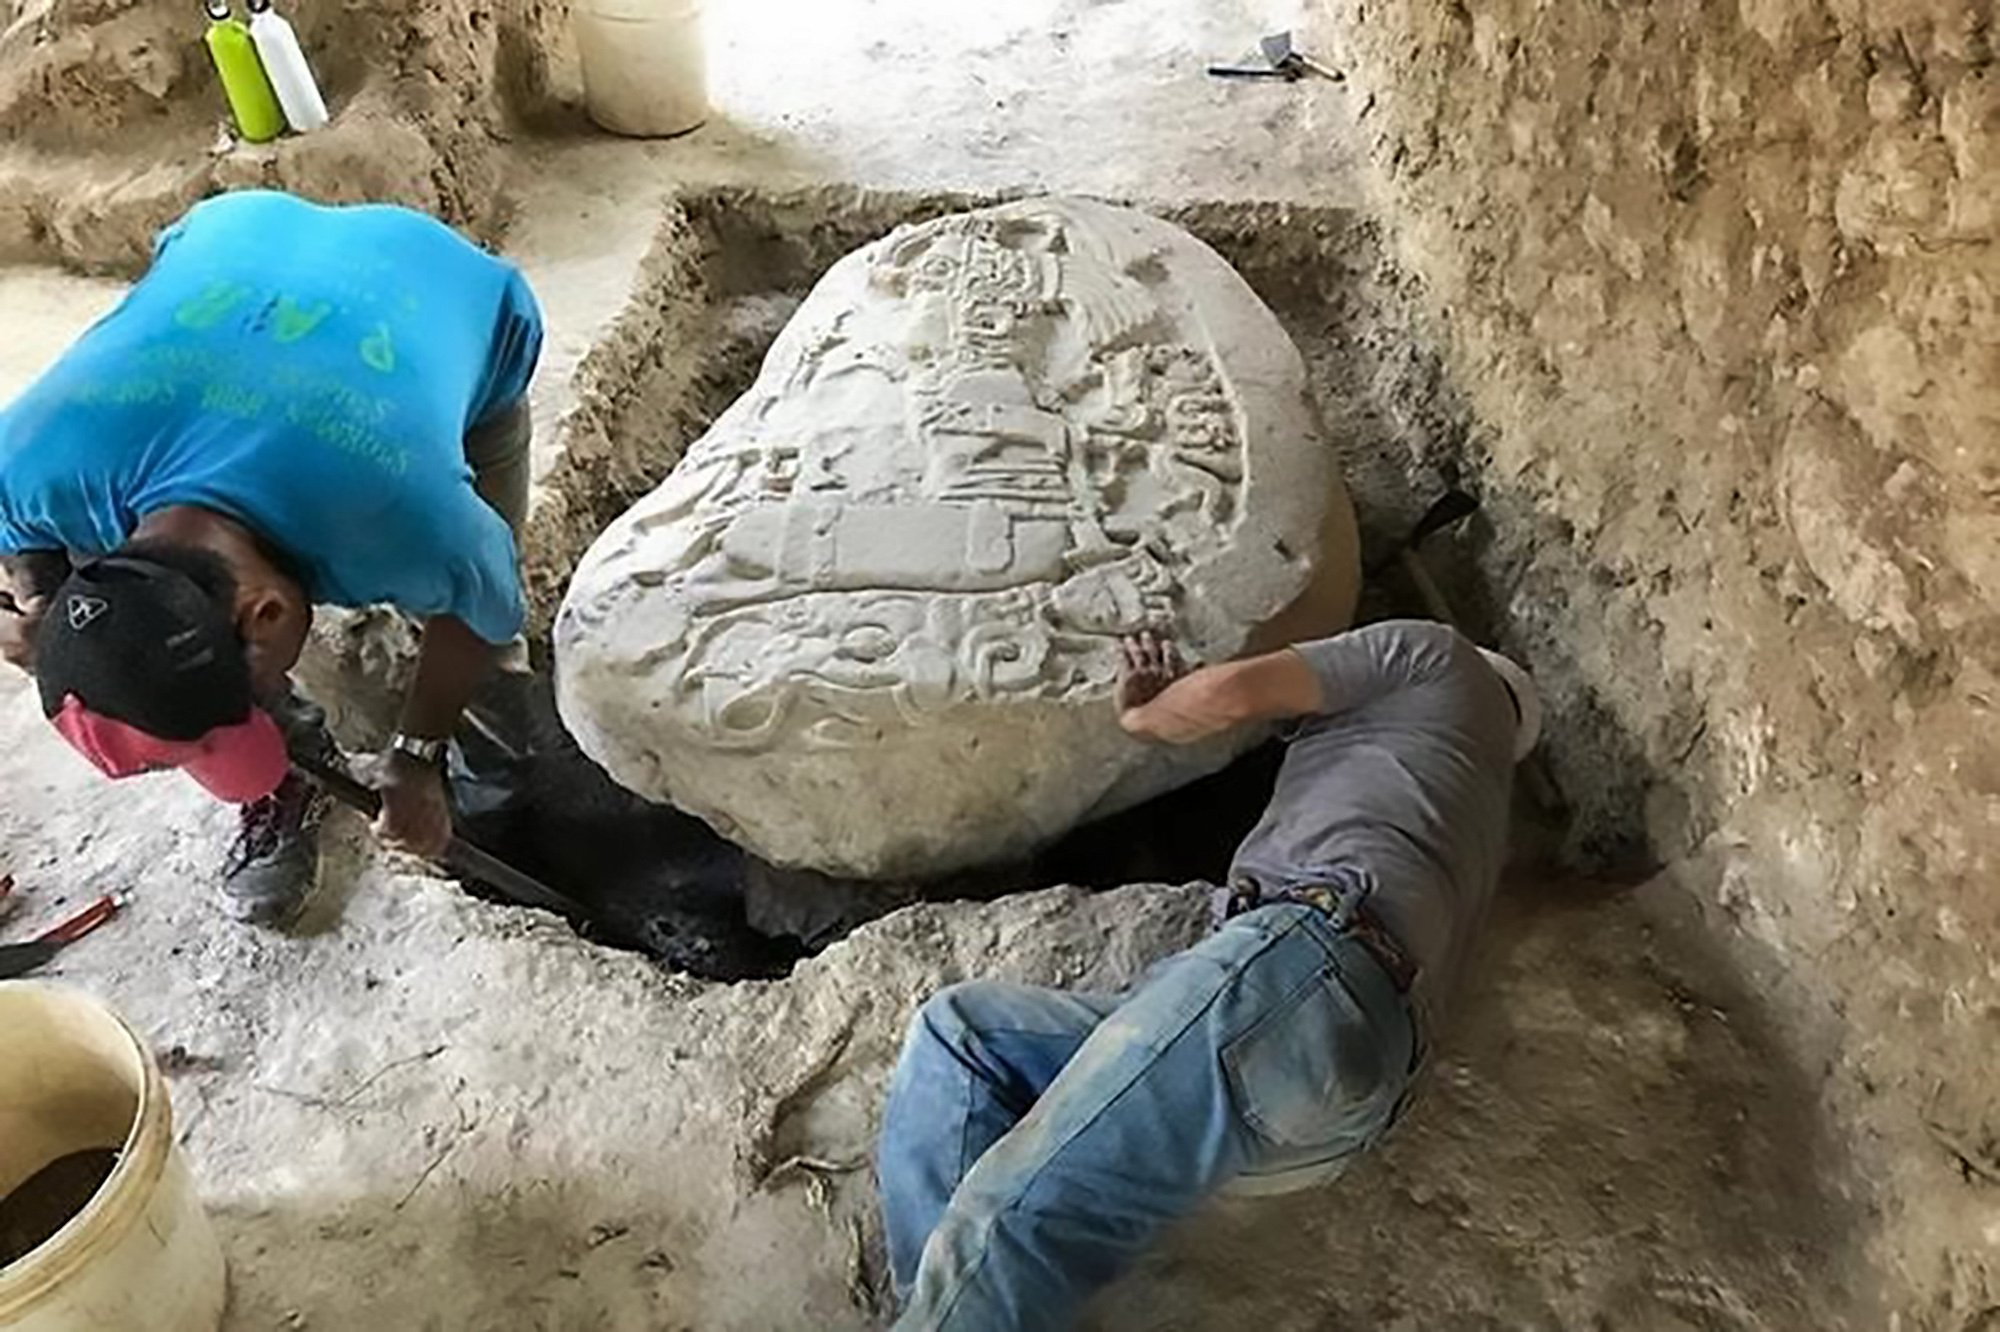 """Pic Shows: The Mayan altar in the archaeological site; Archaeologists have uncovered a 1,500-year-old altar used by priests from the Mayan Snake Kingdom that they say sheds light on a period uncannily like Game of Thrones. The Snake Kings' sudden rise to power and defeat of their enemies like the rival city of Tikal around 6AD is now believed to have been based on elaborate alliances with smaller cities. The altar was sculpted in stone and weighs almost a tonne. It was found in the archaeological site of La Corona, in the department of Peten, in Guatemala, near the border with Mexico and Belize. Archaeologists have explained that the altar belongs to what is known as the Classic Mayan Period, considered to be from 250 AD to 900 AD, and specifically to the beginnings of the expansion of the Kaanul dynasty, also known as the """"Kan"""" Kingdom, or Snake Kingdom. The complex political and military intrigues of this dynasty are what have led archaeologists to make comparisons with Game of Thrones. Thomas Barrientos, Co-Director of the project, explained that the altar was found in a temple. It shows King Chak Took Ich???aak, who was the Governor of La Corona, """"sitting and holding a sceptre on which there are representations of the two Gods of the city."""" The piece is around 1.46 metres (4.7 feet) long and 1.20 metres (3.9 feet) wide and has an inscription in Mayan hieroglyphics showing the date, which is 12th May 544 AD in the Gregorian Calendar. It is carved with elaborate representations of scenes from the period. Barrientos explained that findings like the altar reveal the power of the lords of Kaanul and the Snake Kingdom which they created in La Corona as a political movement to help them overcome their main rivals from Tikal in 562 AD. The Snake Kings went on to rule over the Mayan lowlands, in south-eastern Meso-America, for almost two centuries. The Snake Kings' sudden rise to power through its Game of Thrones-style intrigues with smaller kingdoms left their"""